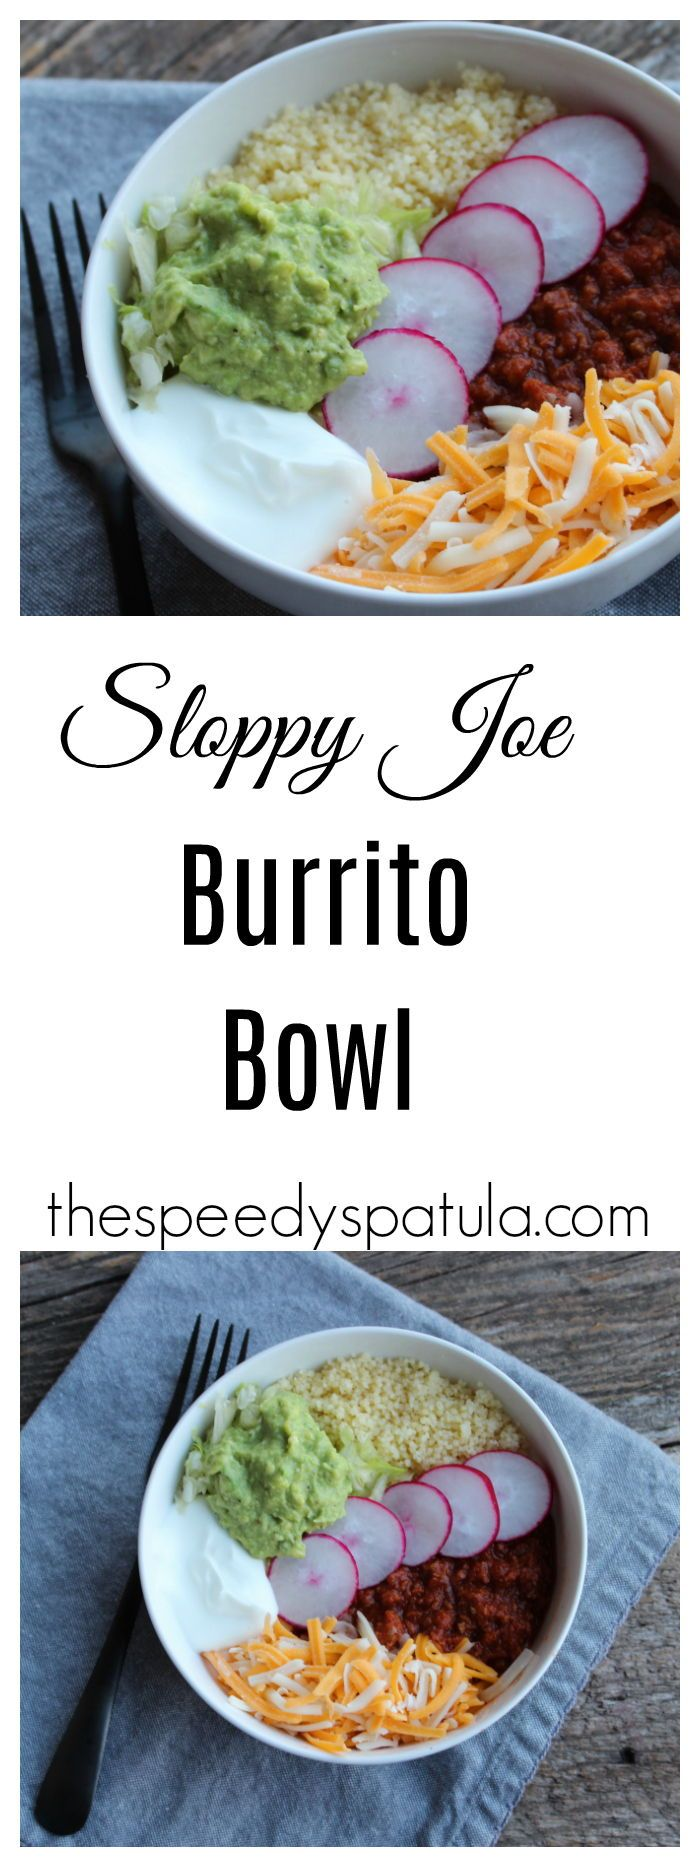 Homemade Sloppy Joe mix combines with all of the wonderful flavors of a burrito.  #thespeedyspatula #sloppyjoe #burrito #dinner #recipe #recipes #dinnerideas #dinnerrecipe #mealideas #lowcarb #keto #ketogenic #healthyrecipe #healthydinner #ketogenicdiet #lowcarbddiet #ketodiet